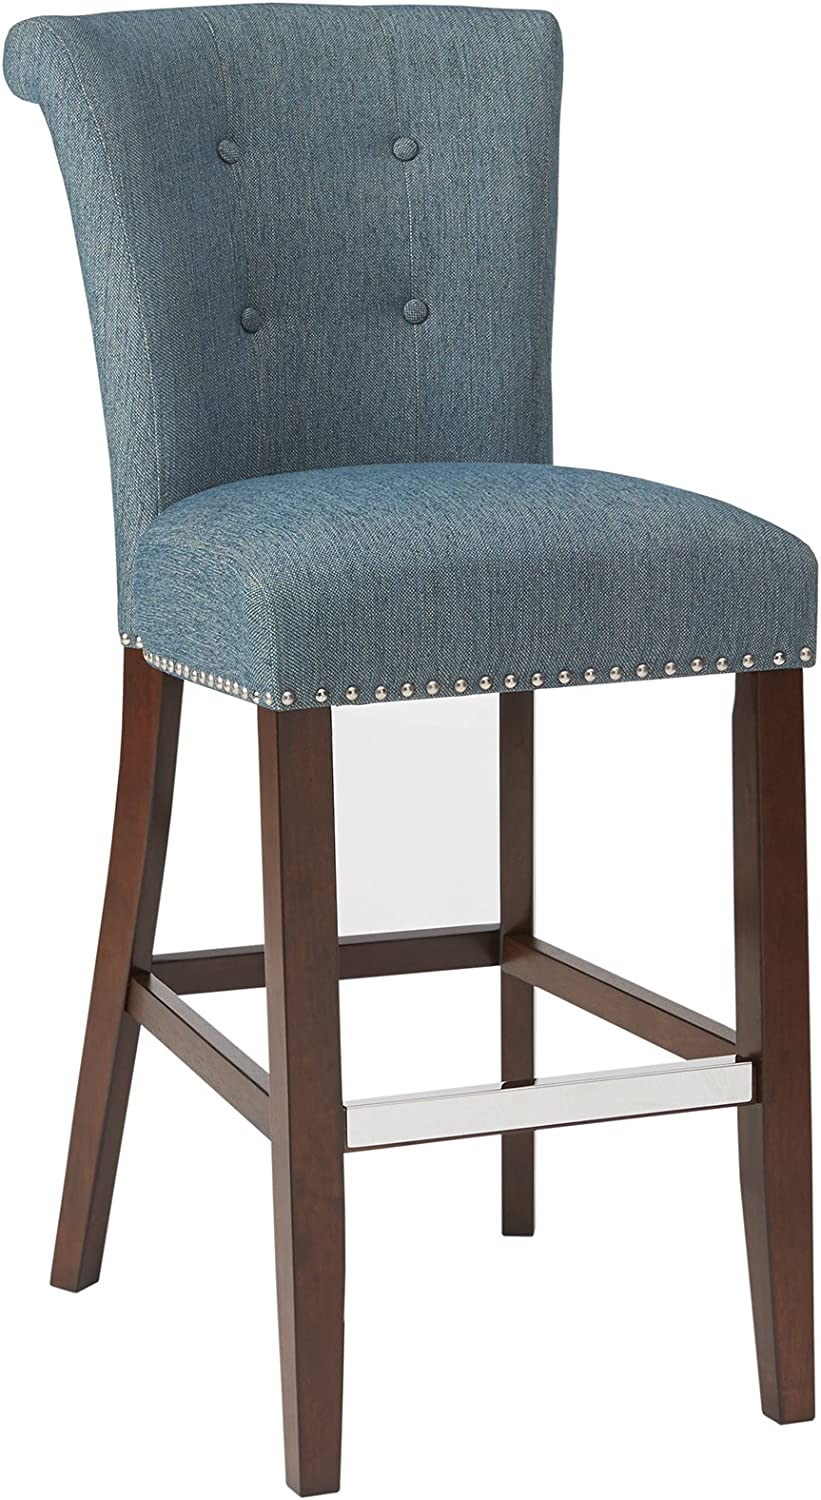 Madison Park 30 Inch Bar Stool Colfax Blue See Below Furniture Decor Amazon Com